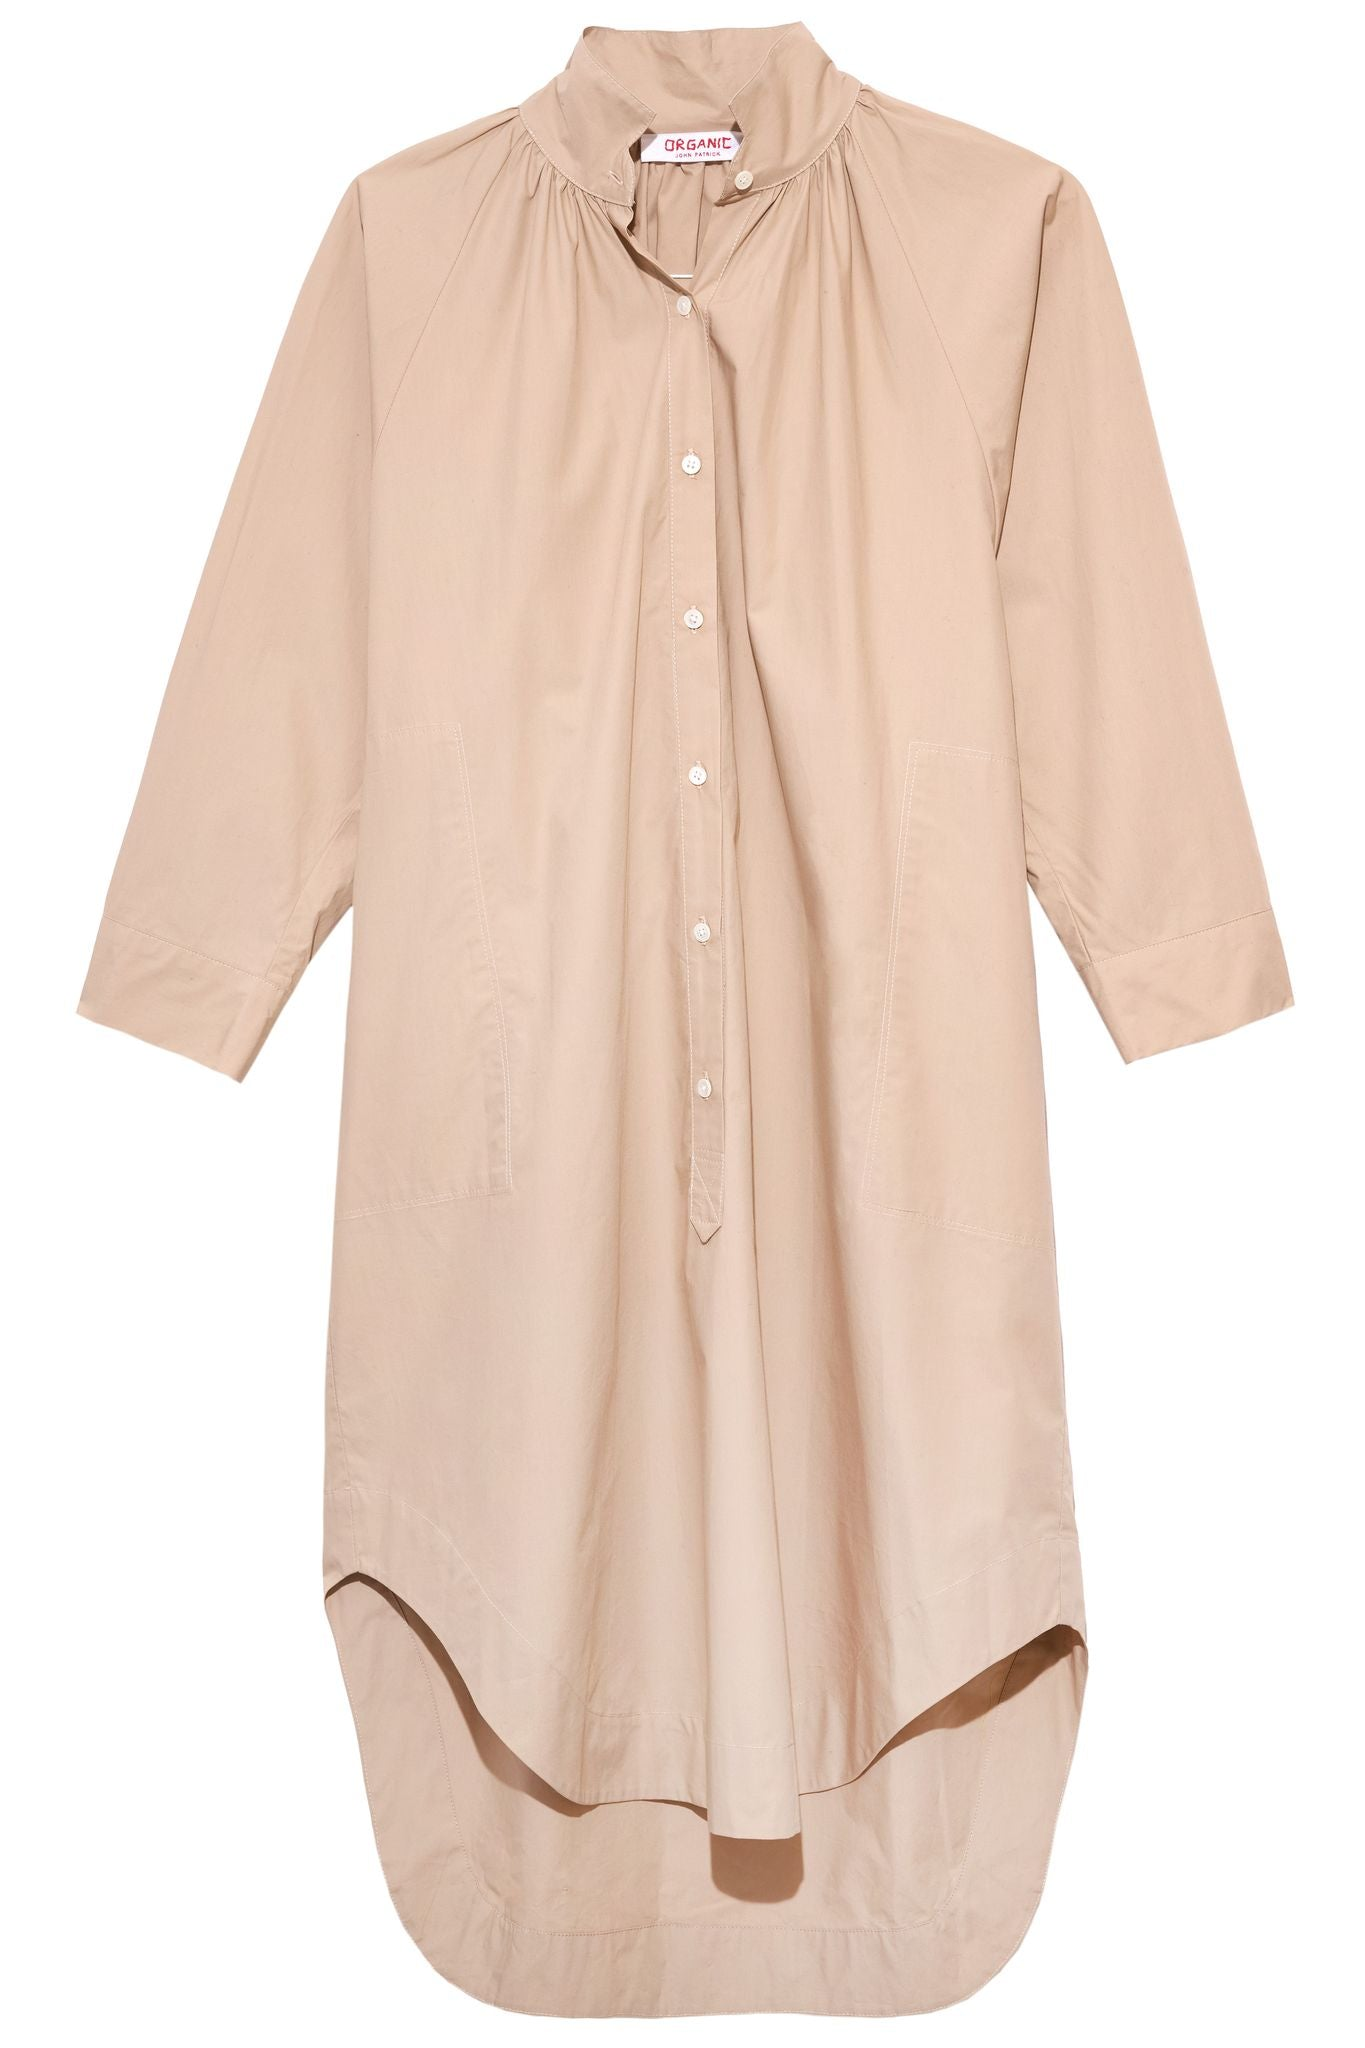 The Rainer Shirtdress